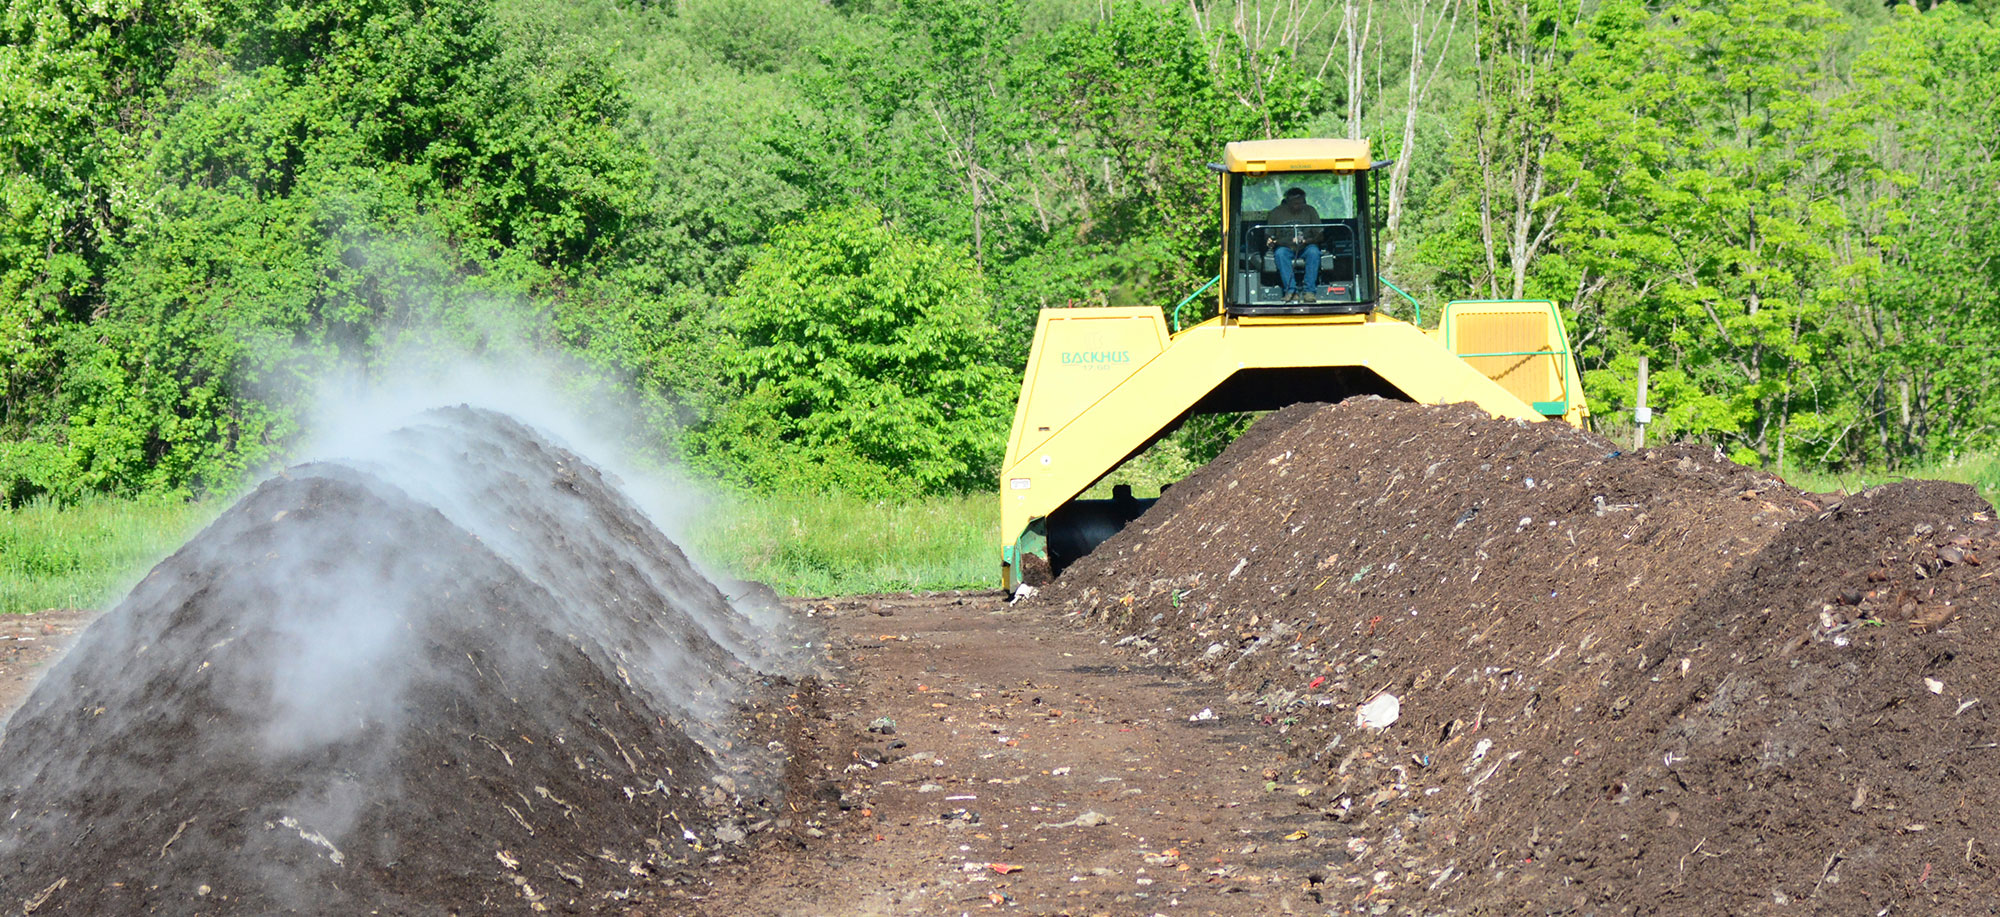 Composting Uses Microrganisms to Convert Organic Waste into Soil Nutrients